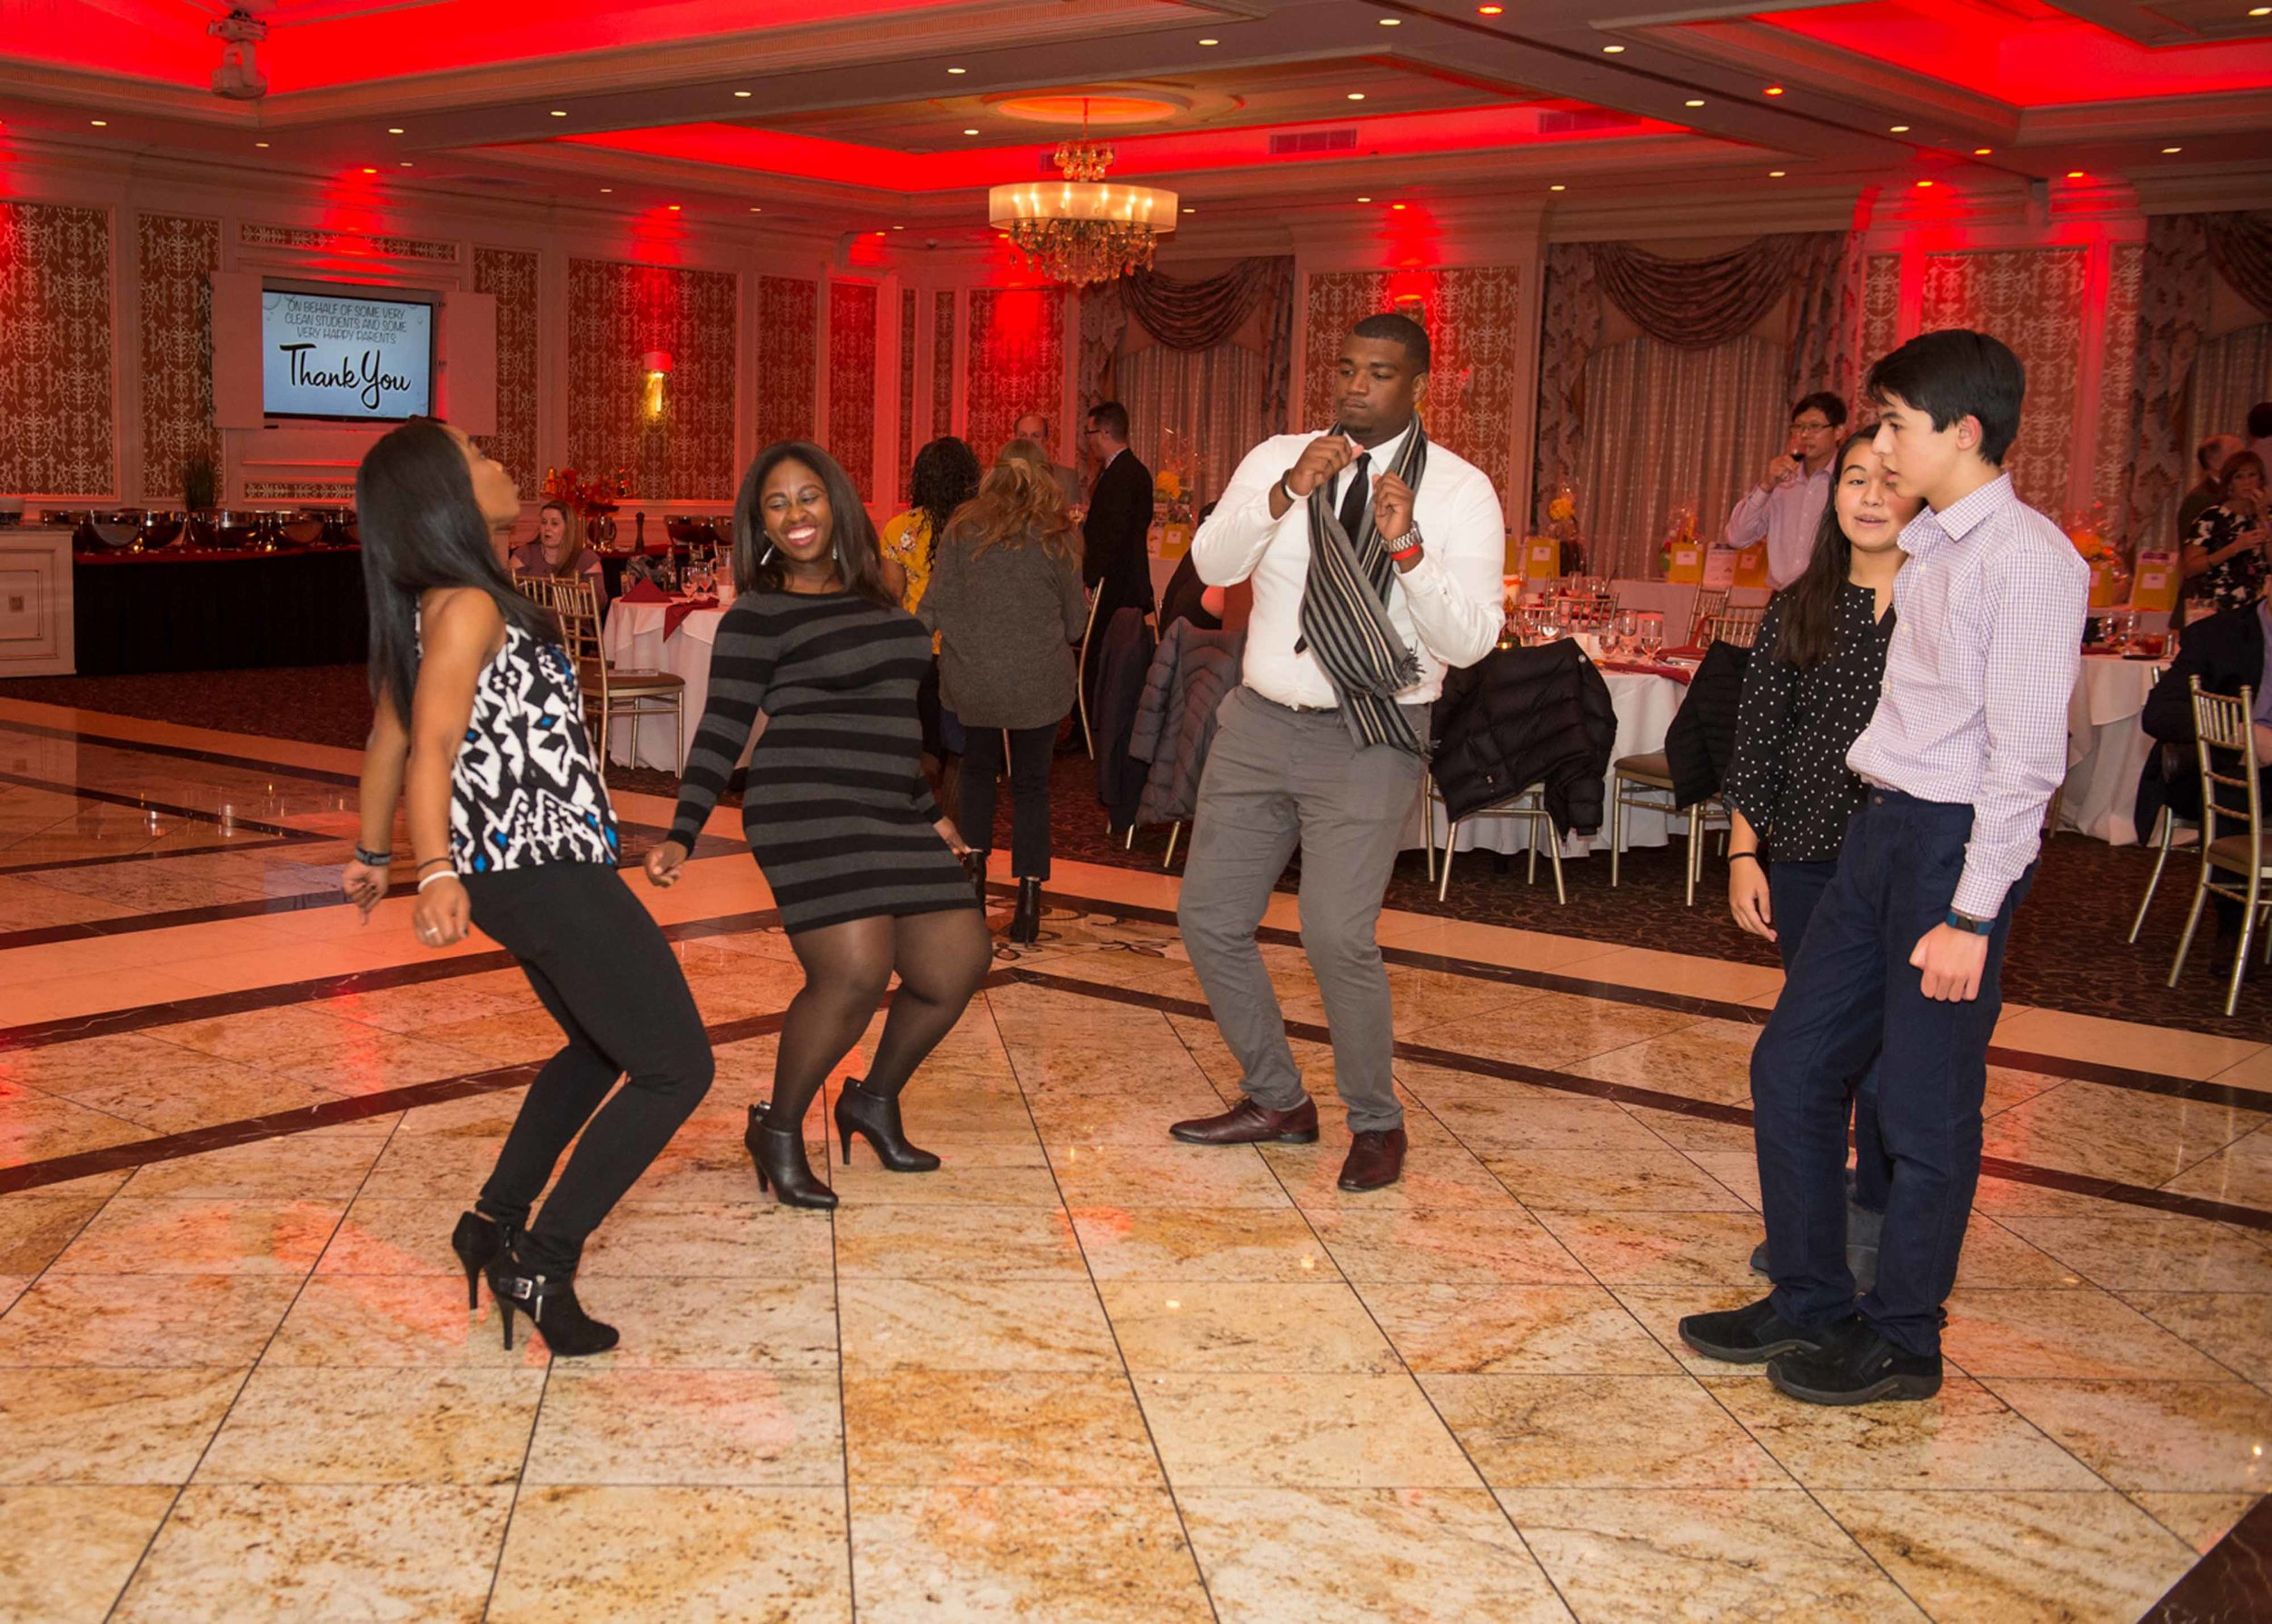 2017-11-10 The EPIC School - Party with a Purpose - Biagios on the Terrace - Paramus NJ-213.jpg